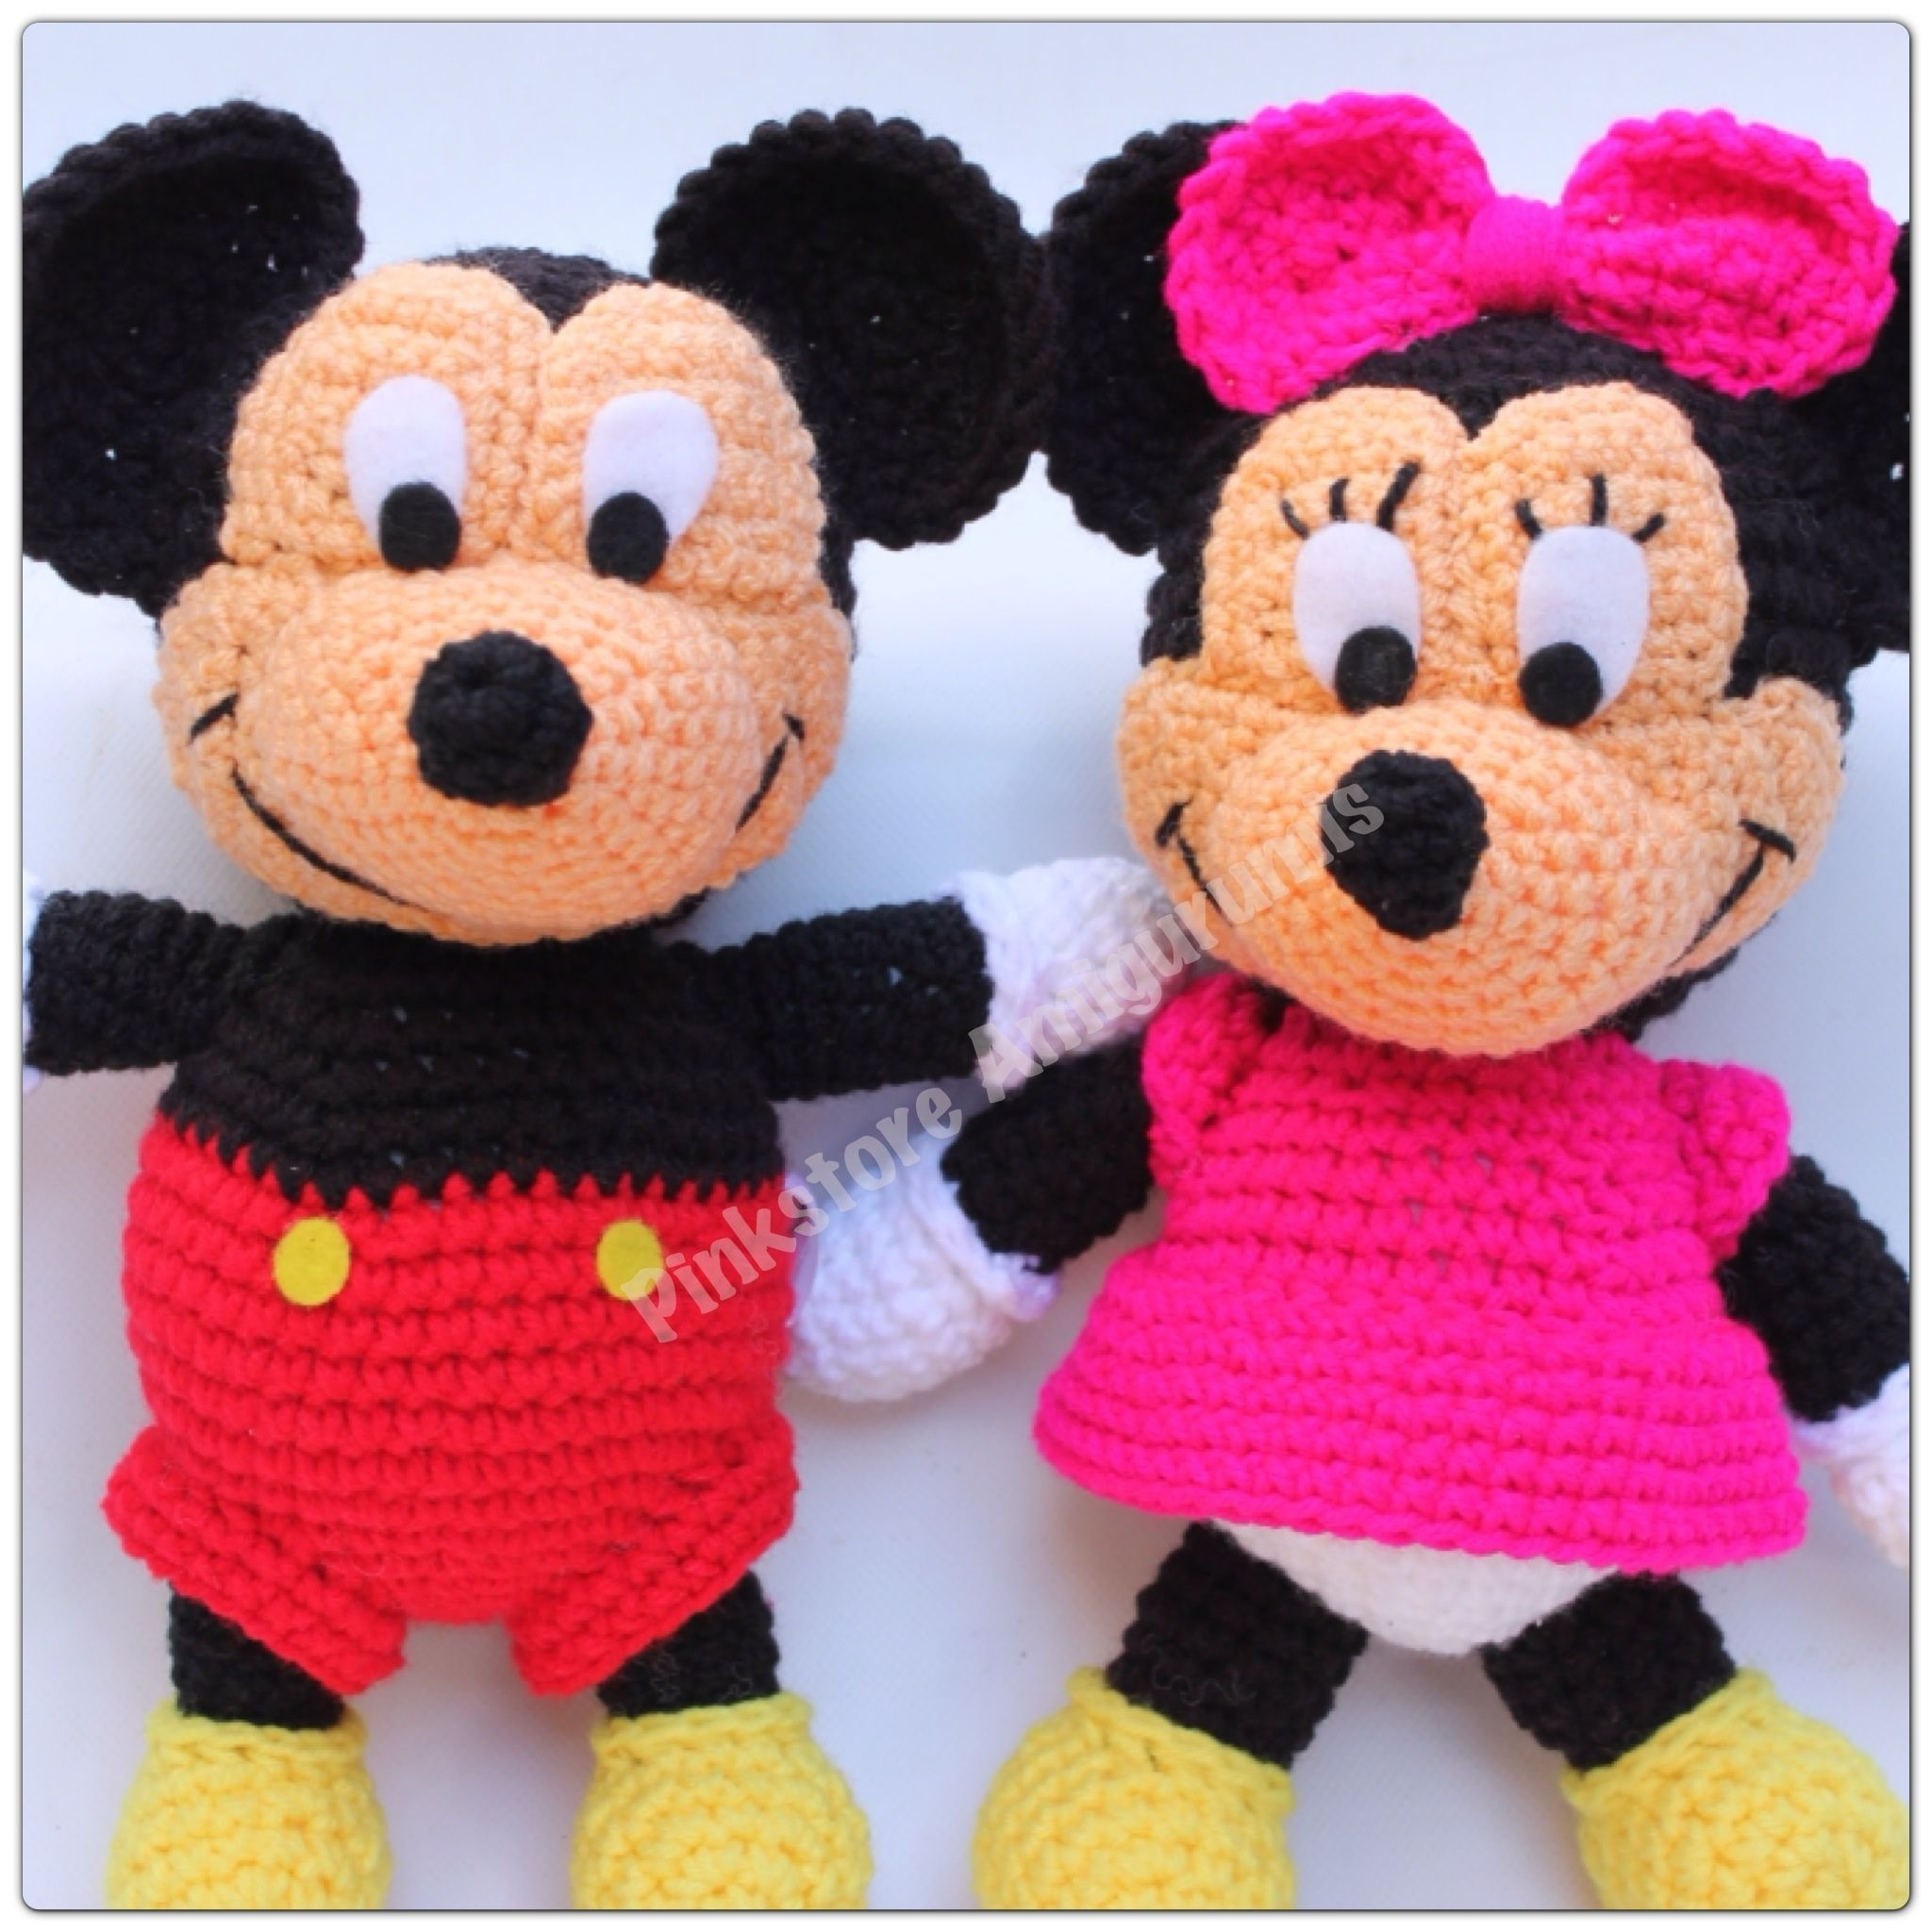 Minnie and mickey by pinkstore amigurumis 3 muecos by minnie and mickey by pinkstore amigurumis bankloansurffo Choice Image